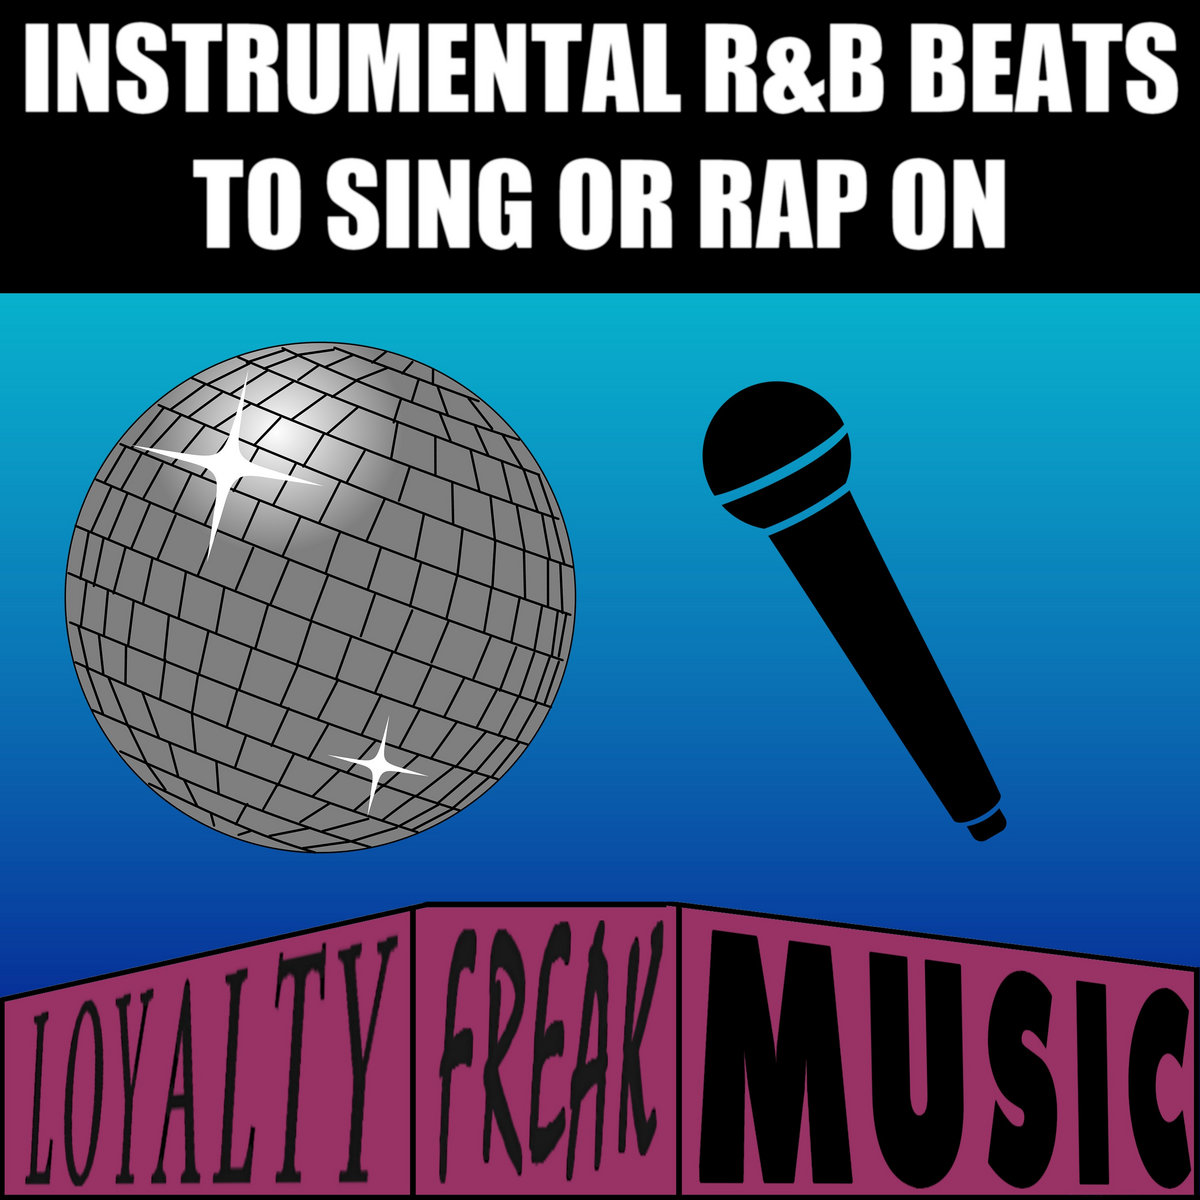 INSTRUMENTAL R&B BEATS TO SING OR RAP ON | Monplaisir Loyalty Freak